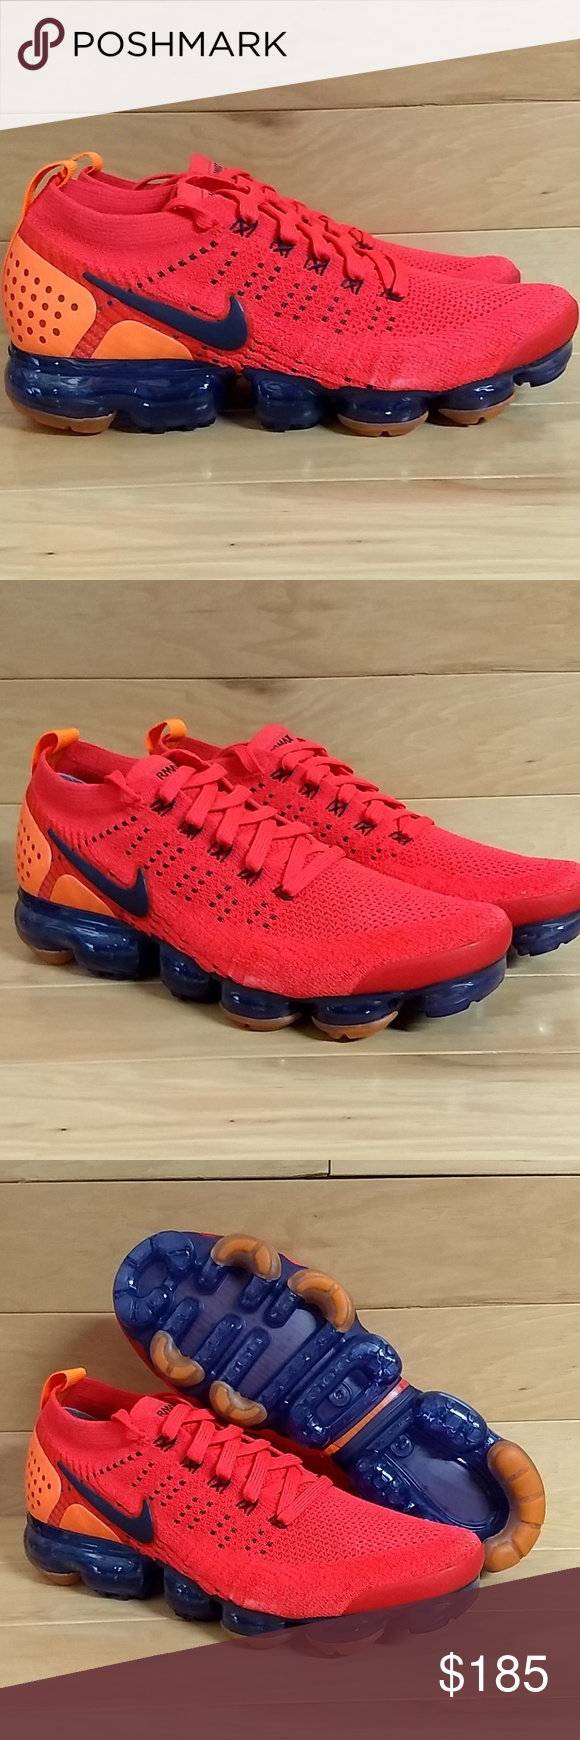 3b72d92d047b Nike Air Vapormax Flyknit 2 Spiderman AR5406-600 Brand New. With Box Great  quality Nike running casual sneakers at a great price.